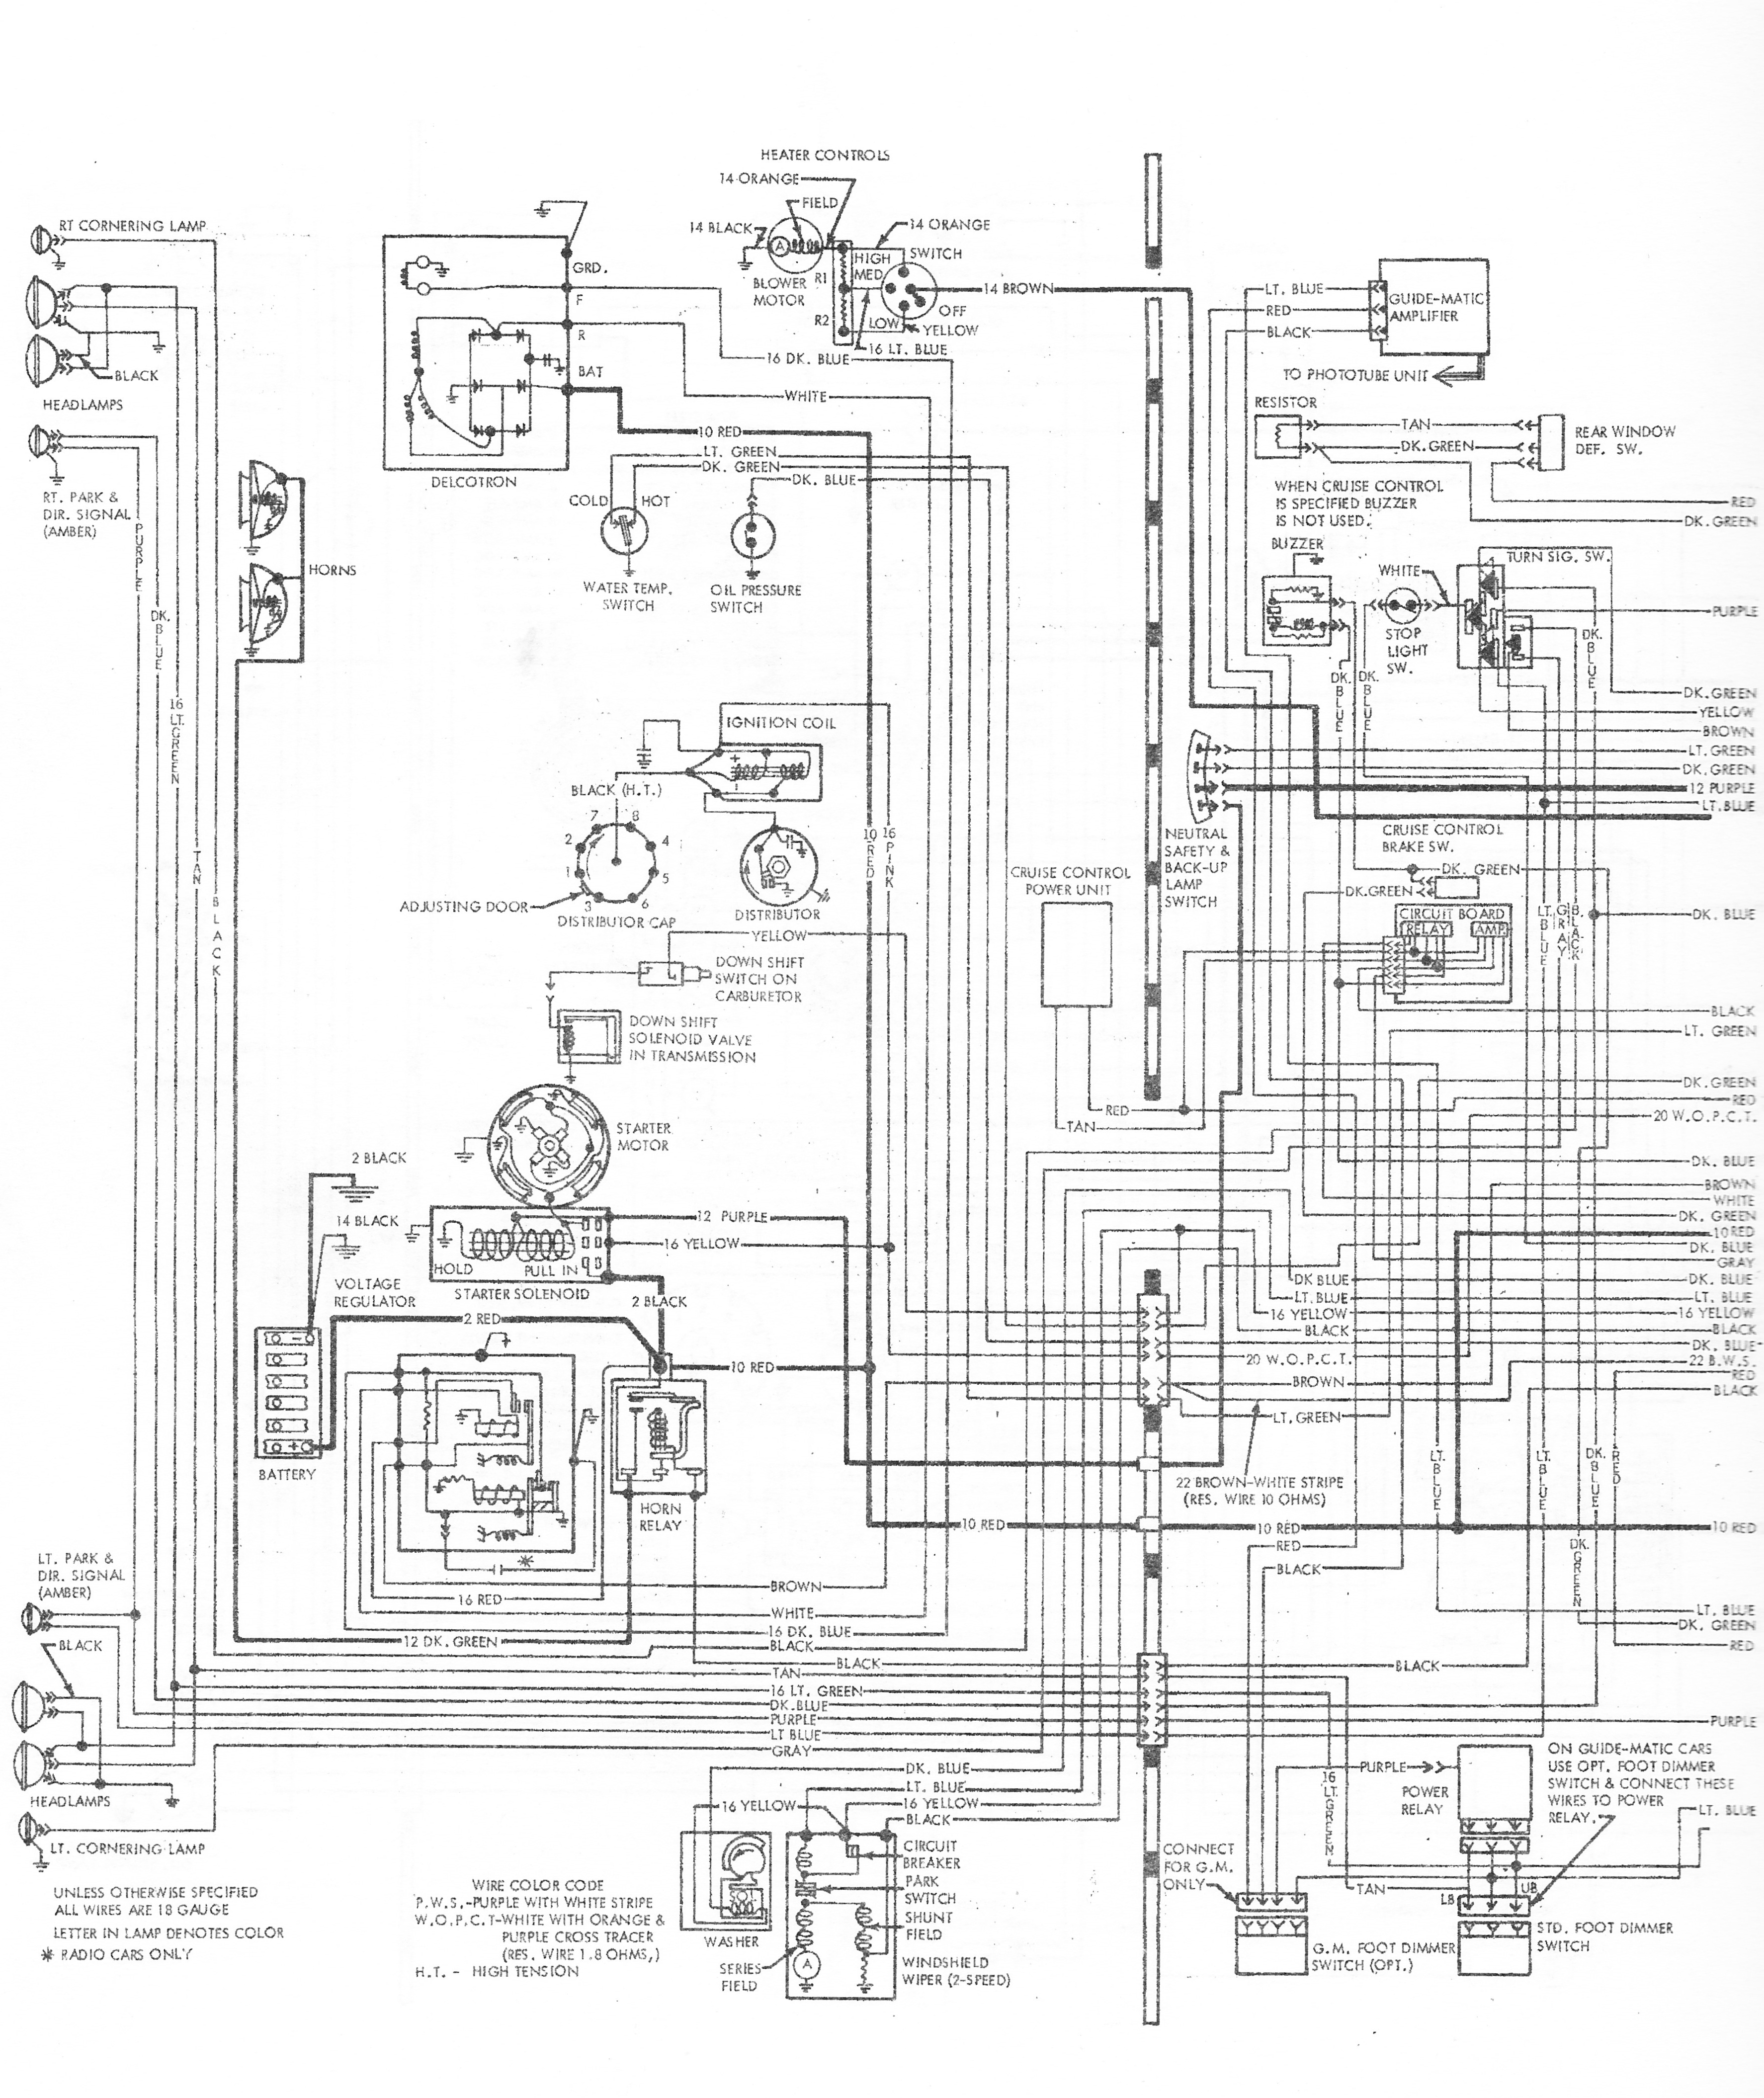 Kawasaki Klr 650 Wiring Diagram Auto Electrical Related With